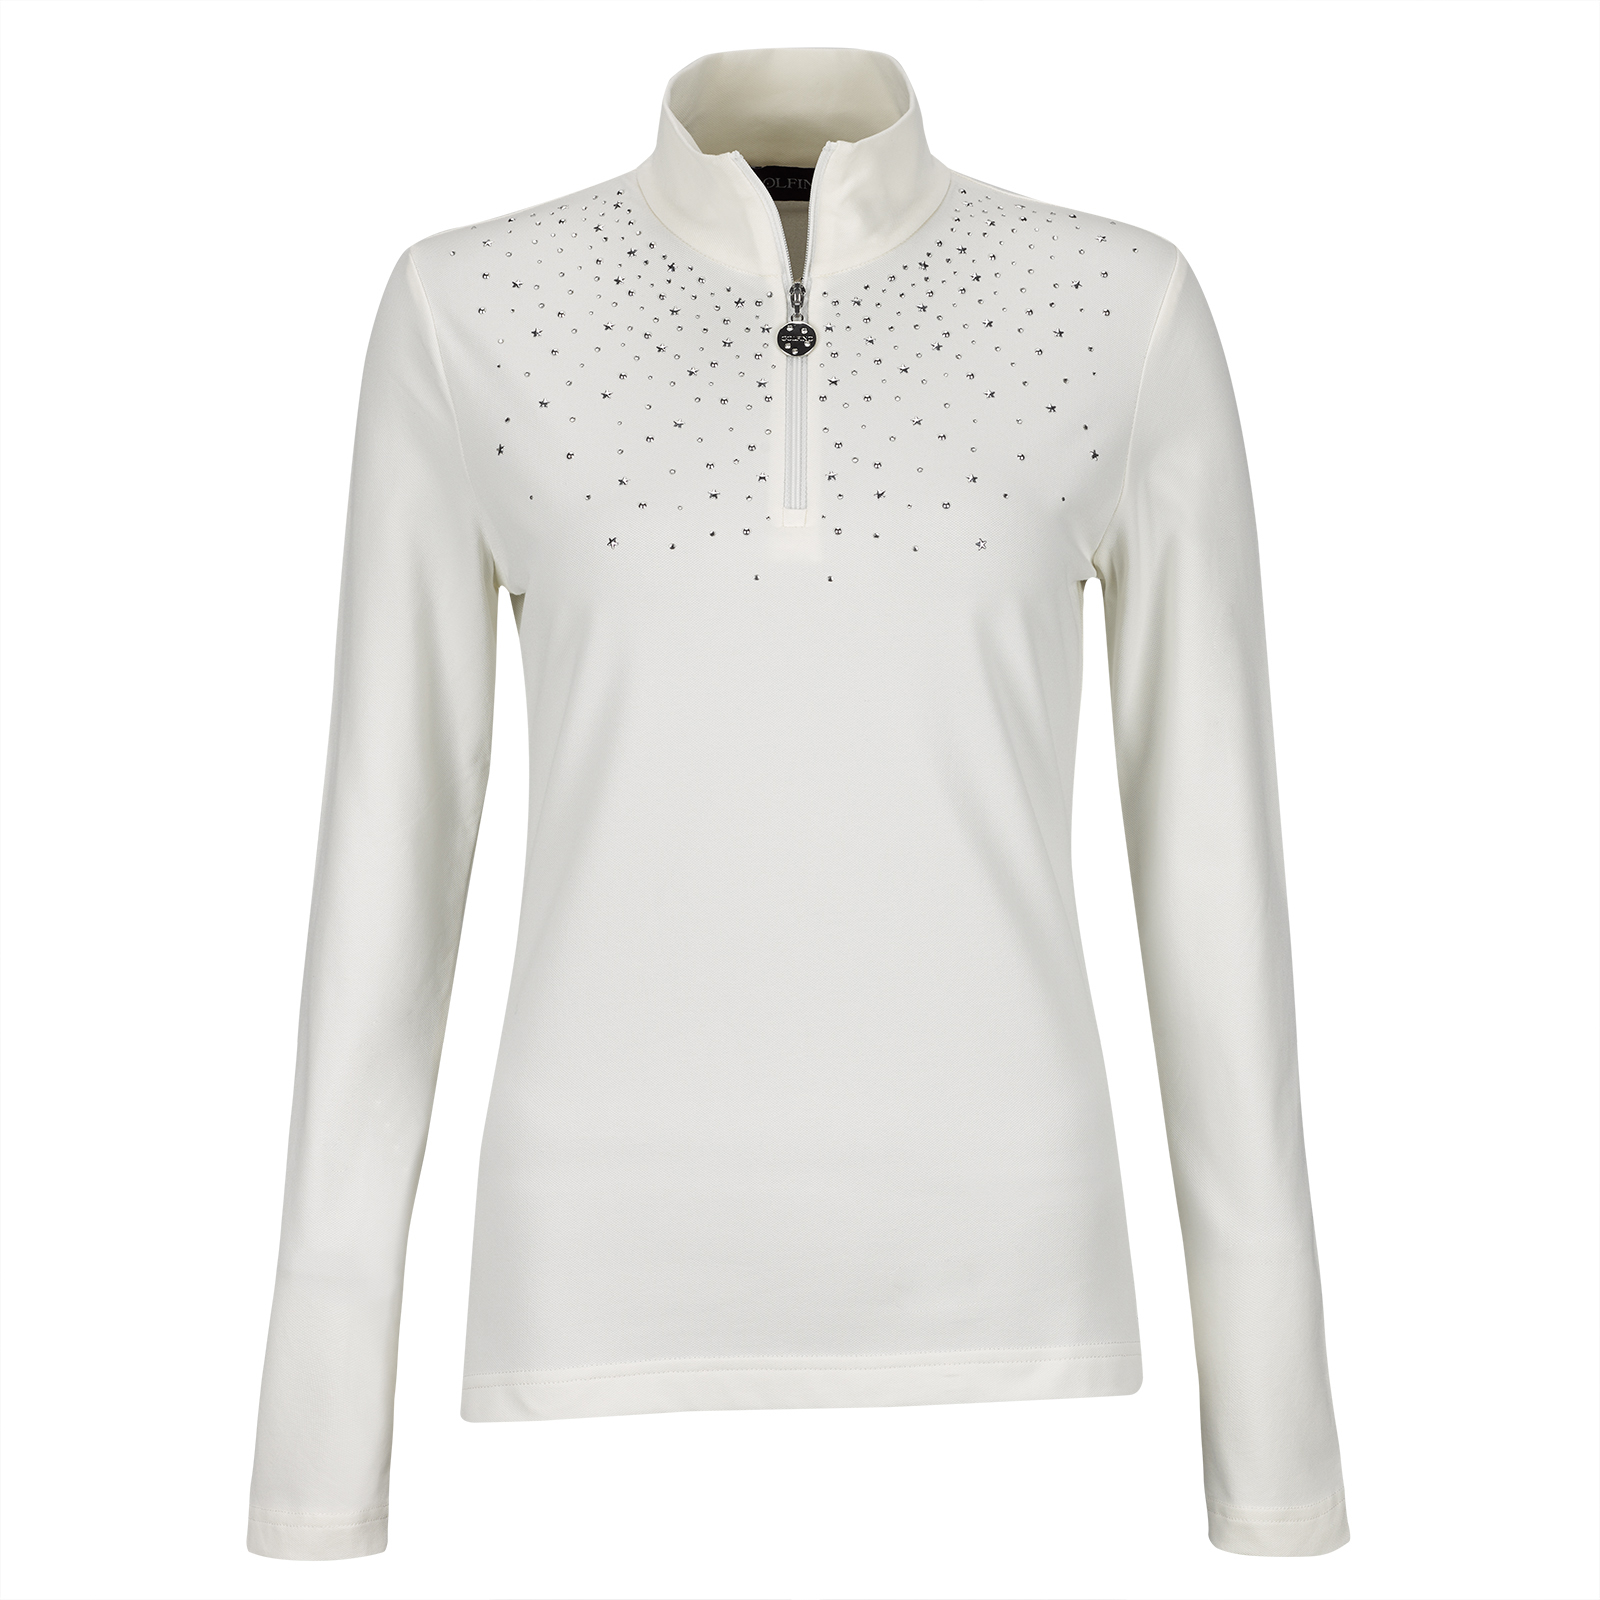 Ladies Winter Power stretch underlayer with rhinestones and Sun Protection